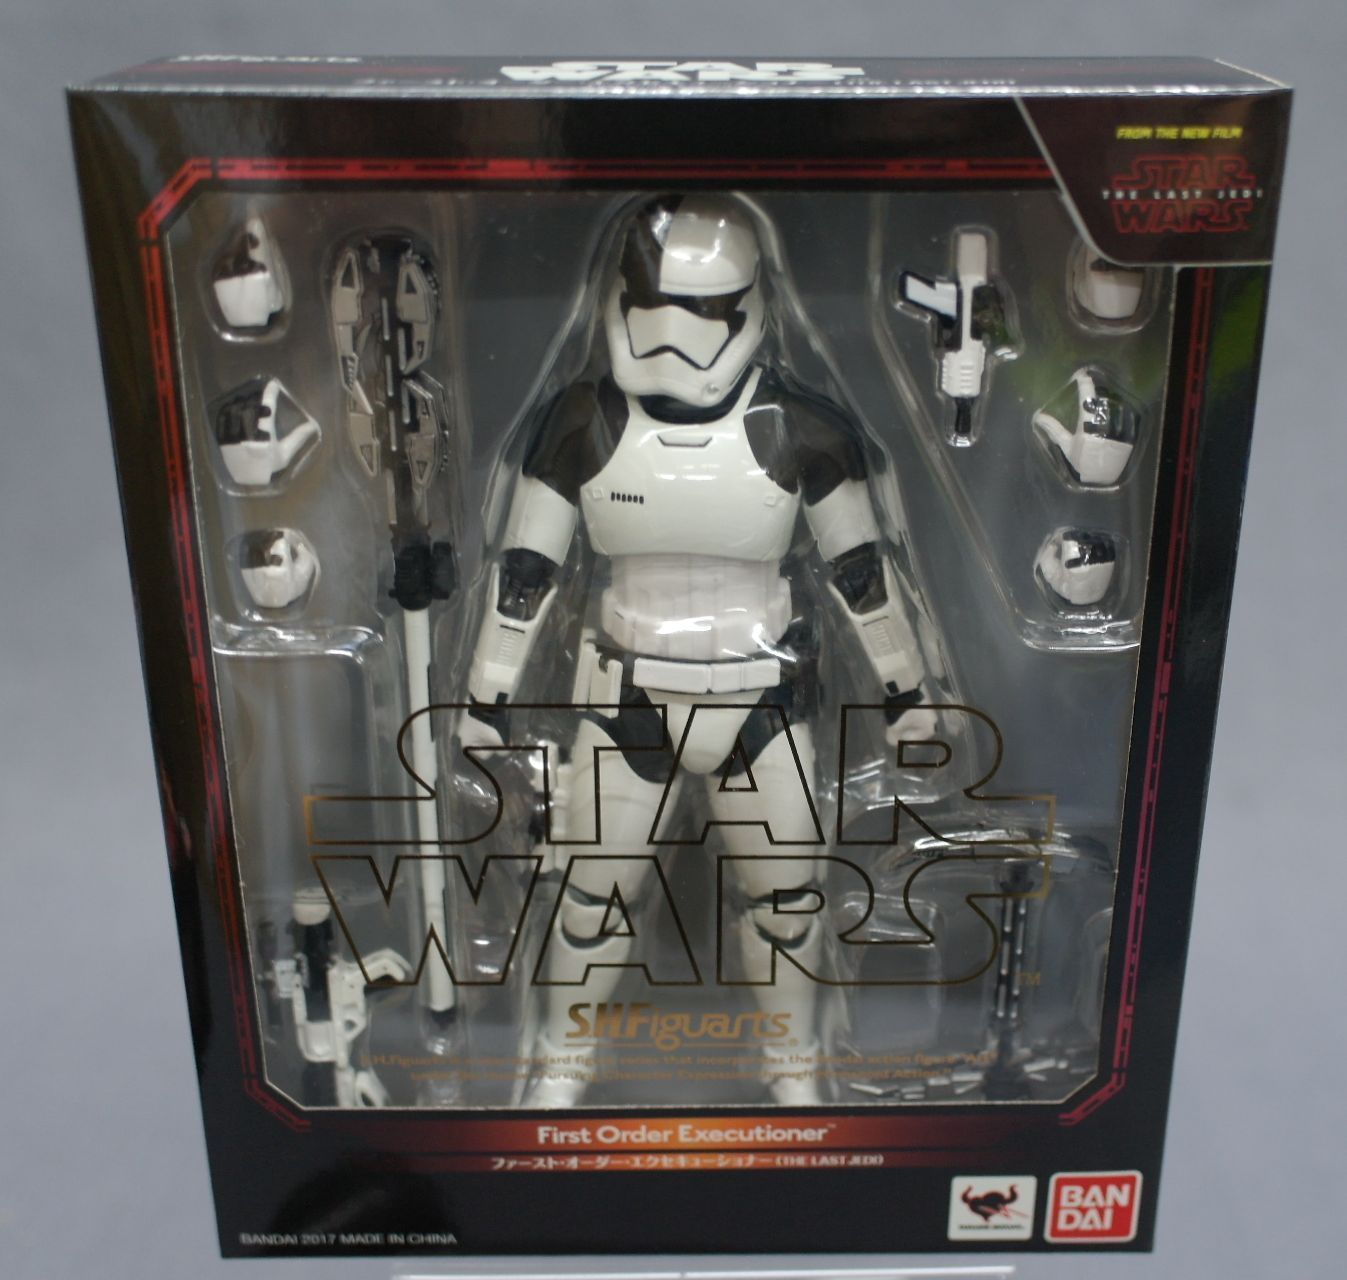 Figuarts Star Wars The Last Jedi FIRST ORDER EXECUTIONER action figure S.H